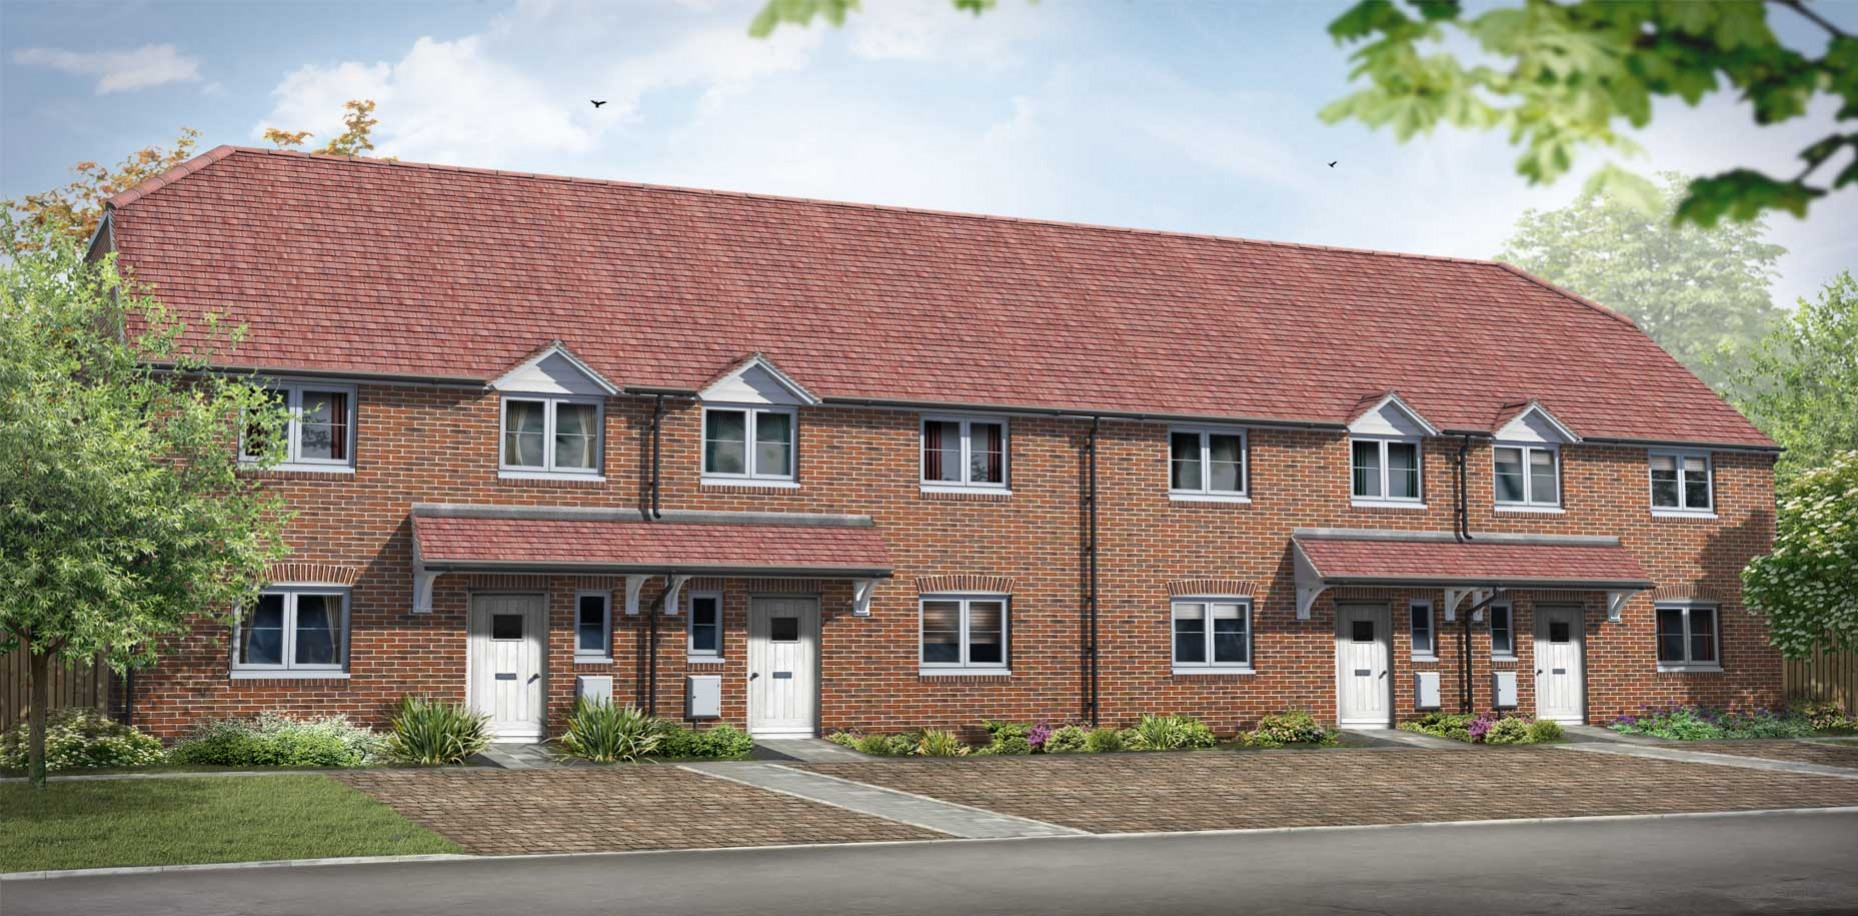 Preview Launch Of Three Bed Homes At Passmore Green, Maidstone